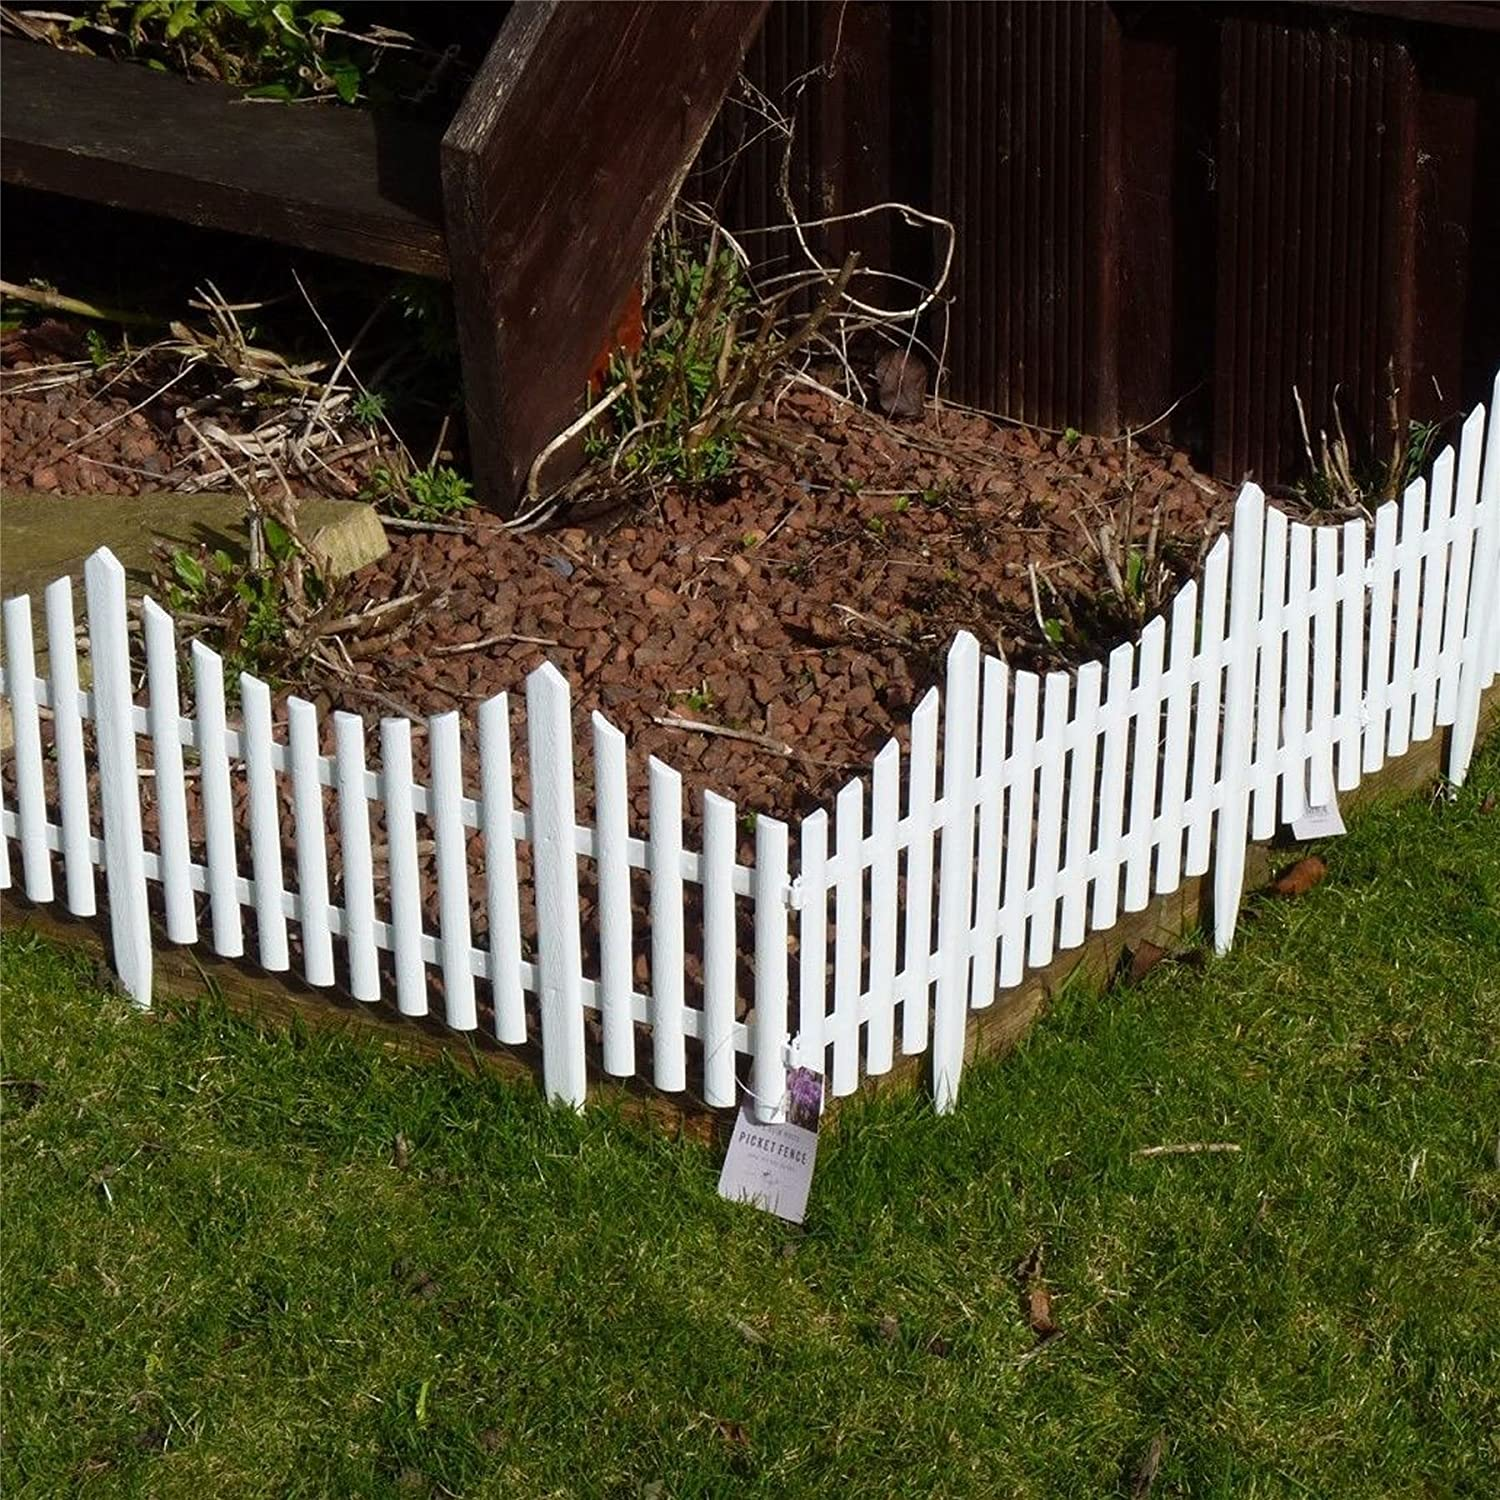 White Picket Fence Flower Bed Garden Edging Border for Grass Path Driveway Etc